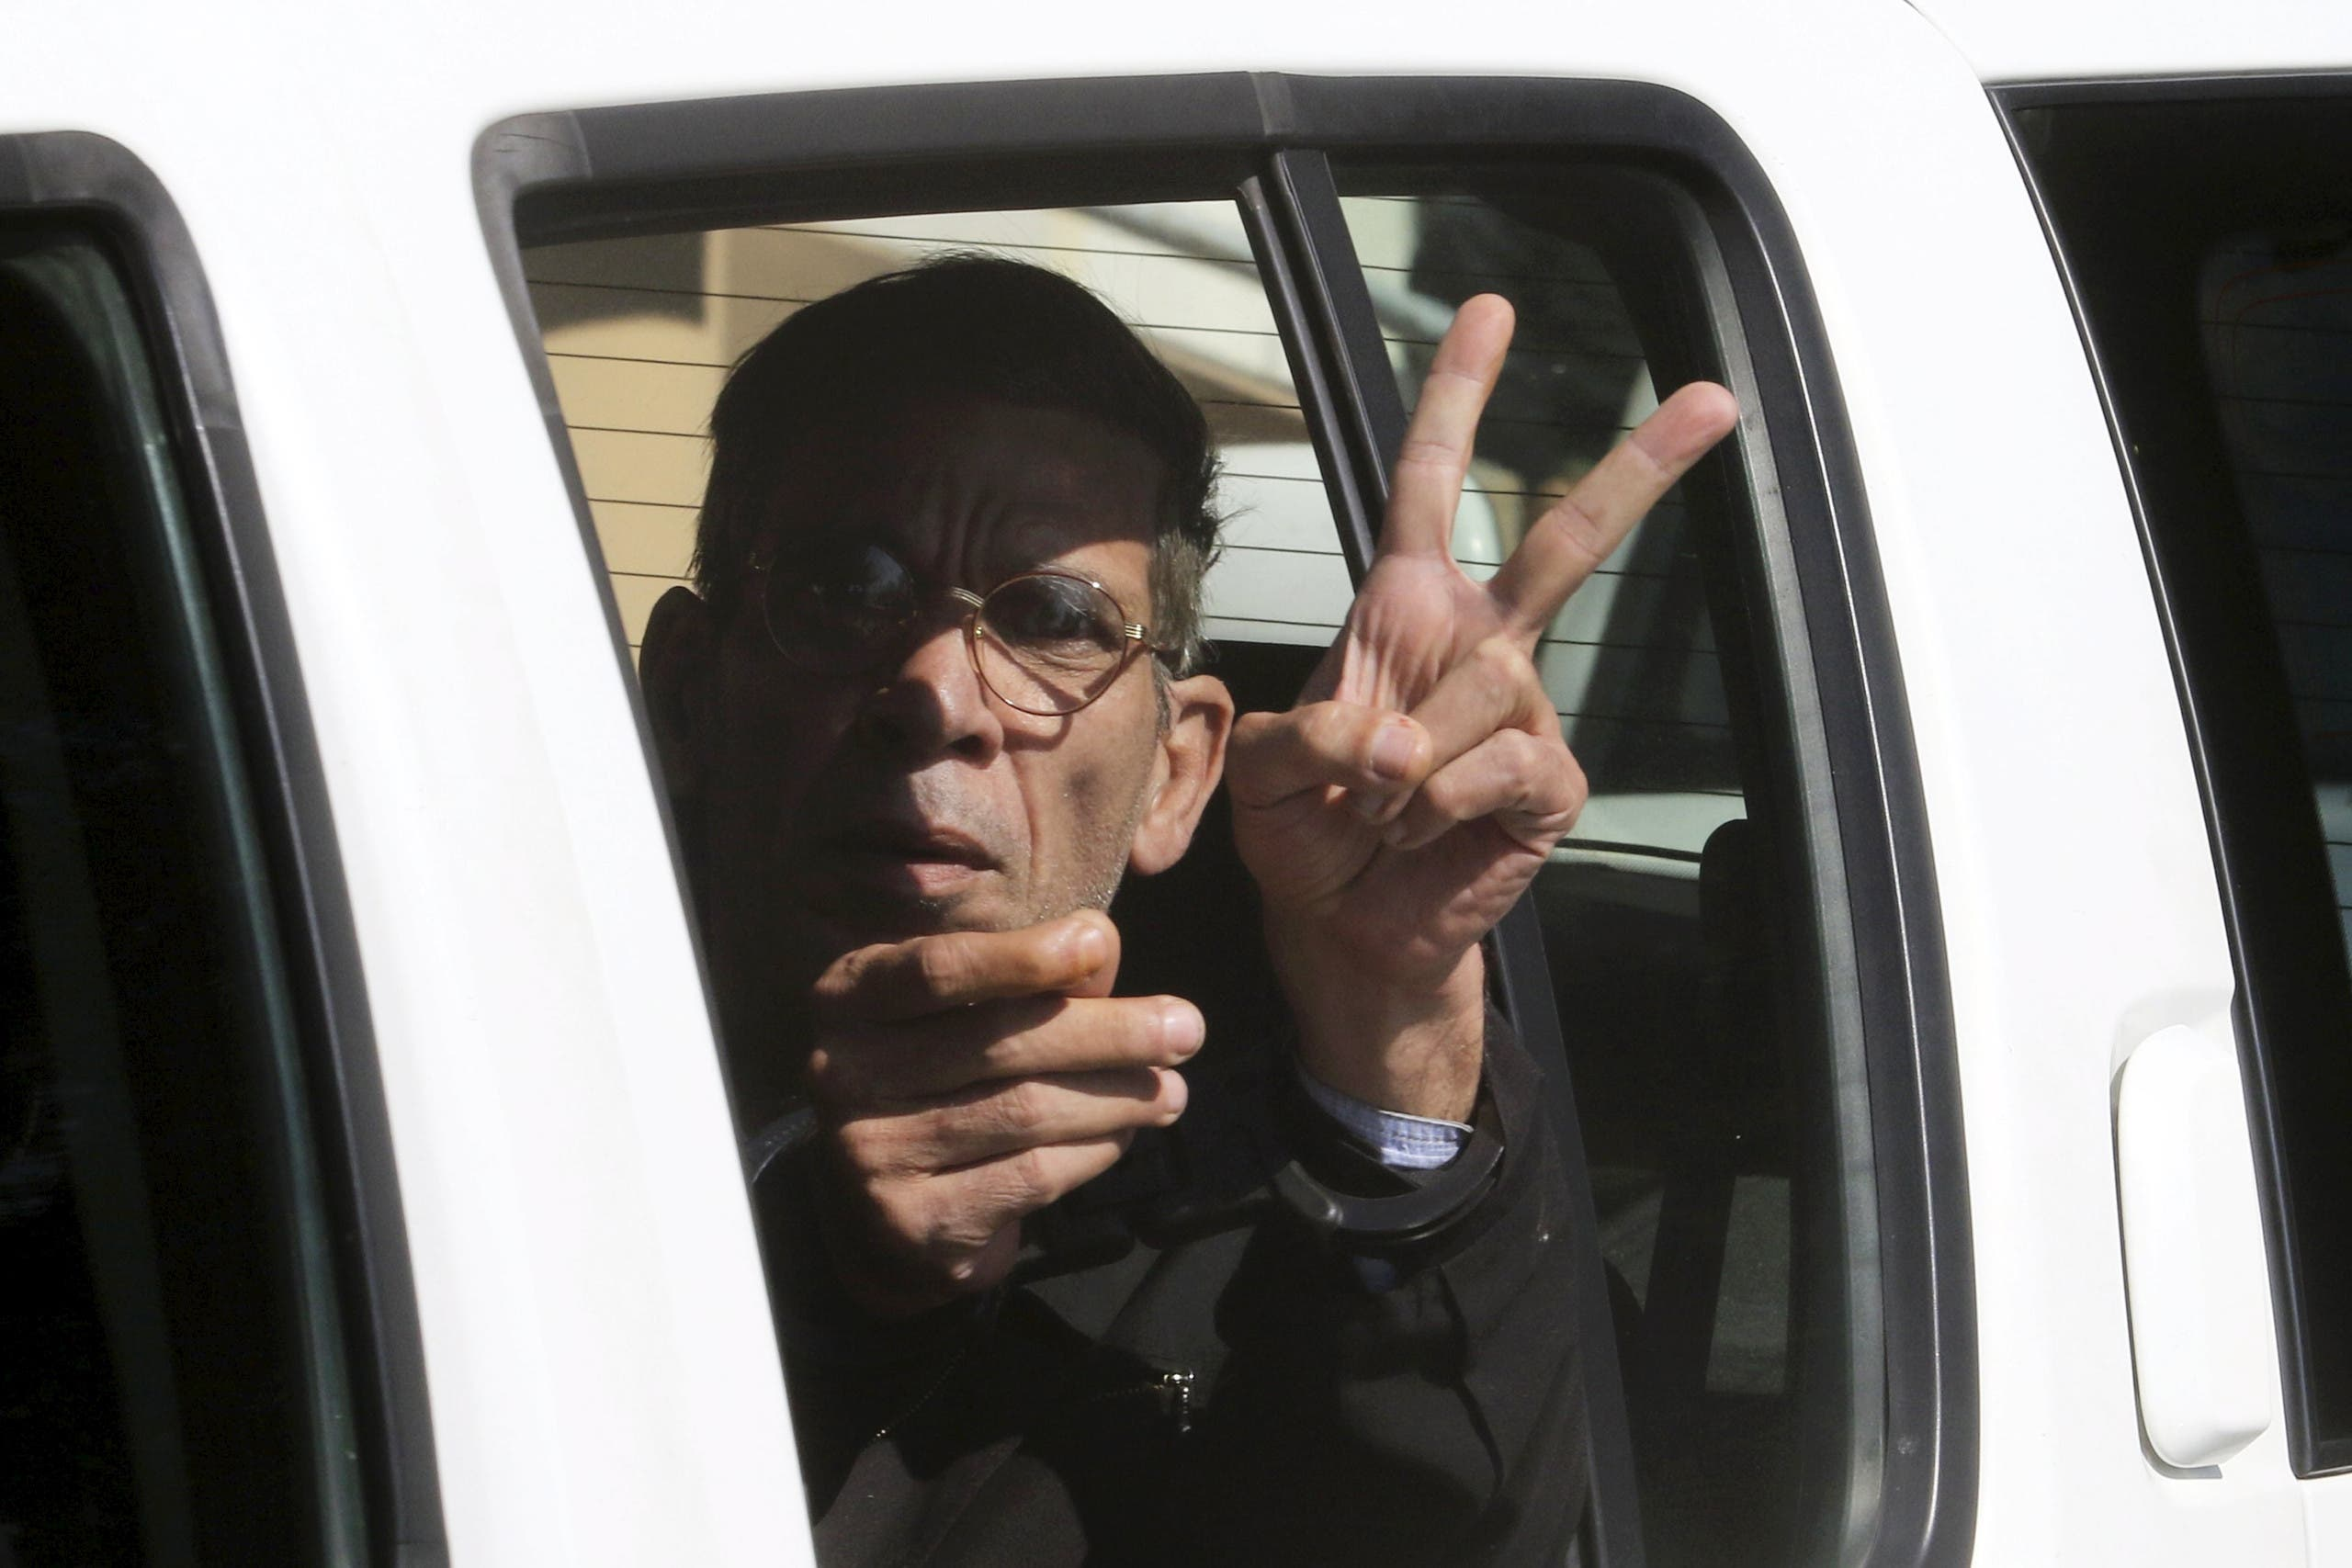 The man who was arrested after he hijacked an EgyptAir flight, which was forced to land in Cyprus on Tuesday, gestures as he is transferred by Cypriot police from a court in the city of Larnaca, Cyprus March 30, 2016 REUTERS